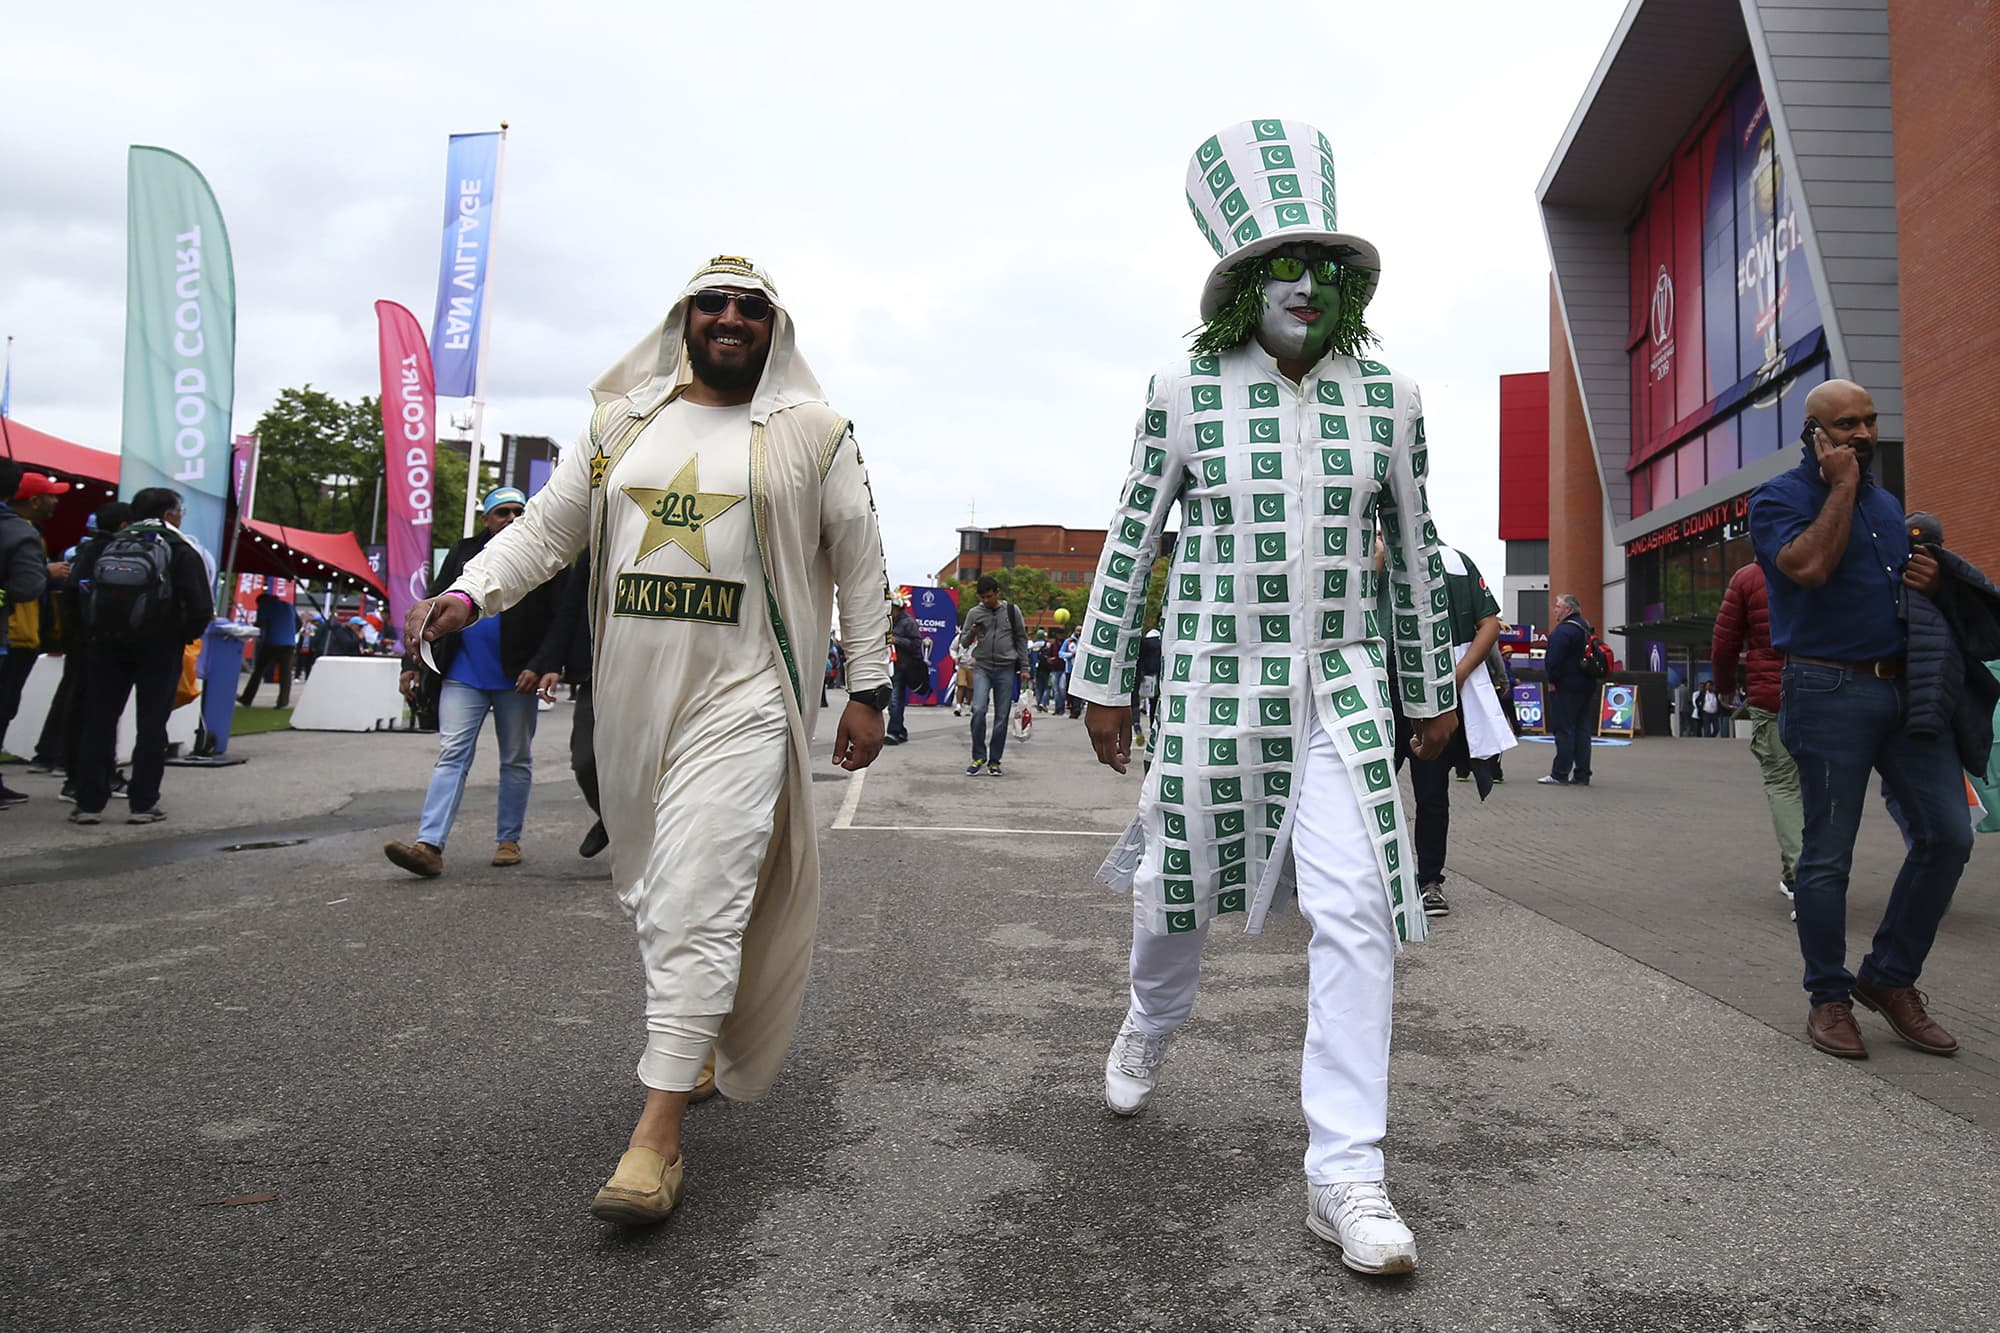 A closer look at the costumes worn by some Pakistani supporters in the crowd. ─ AP